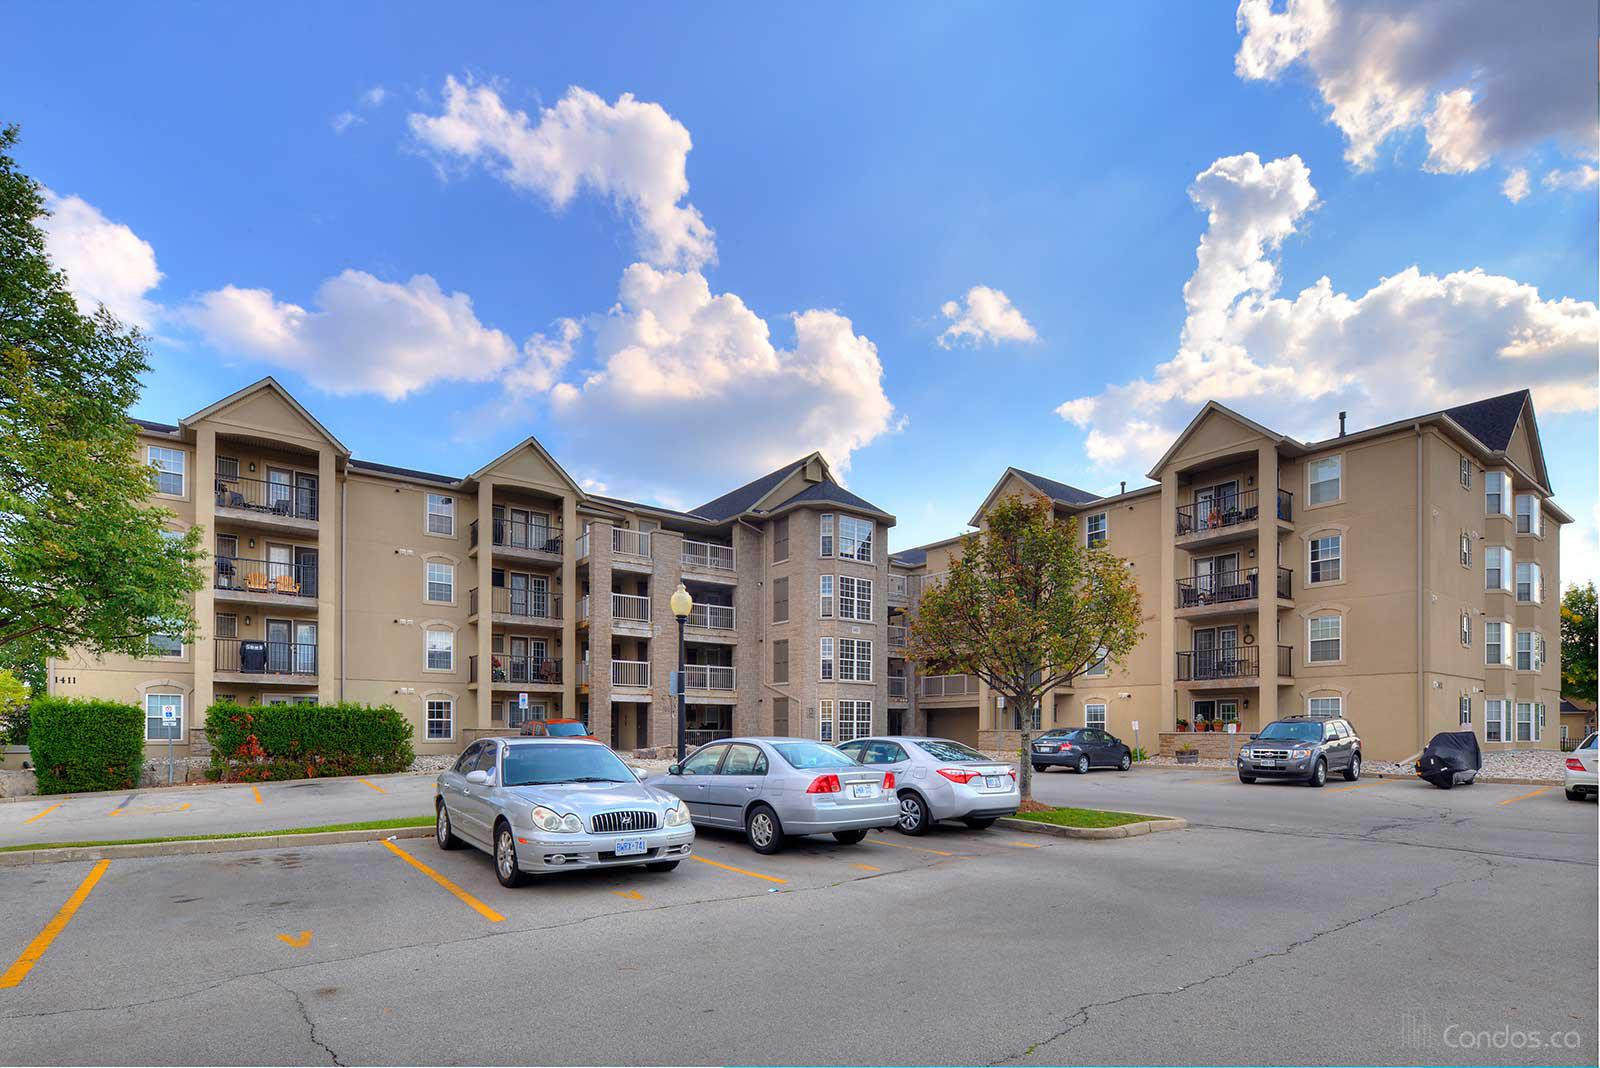 Wedgewood Condominiums Ⅲ at 1411 Walkers Line, Burlington 1